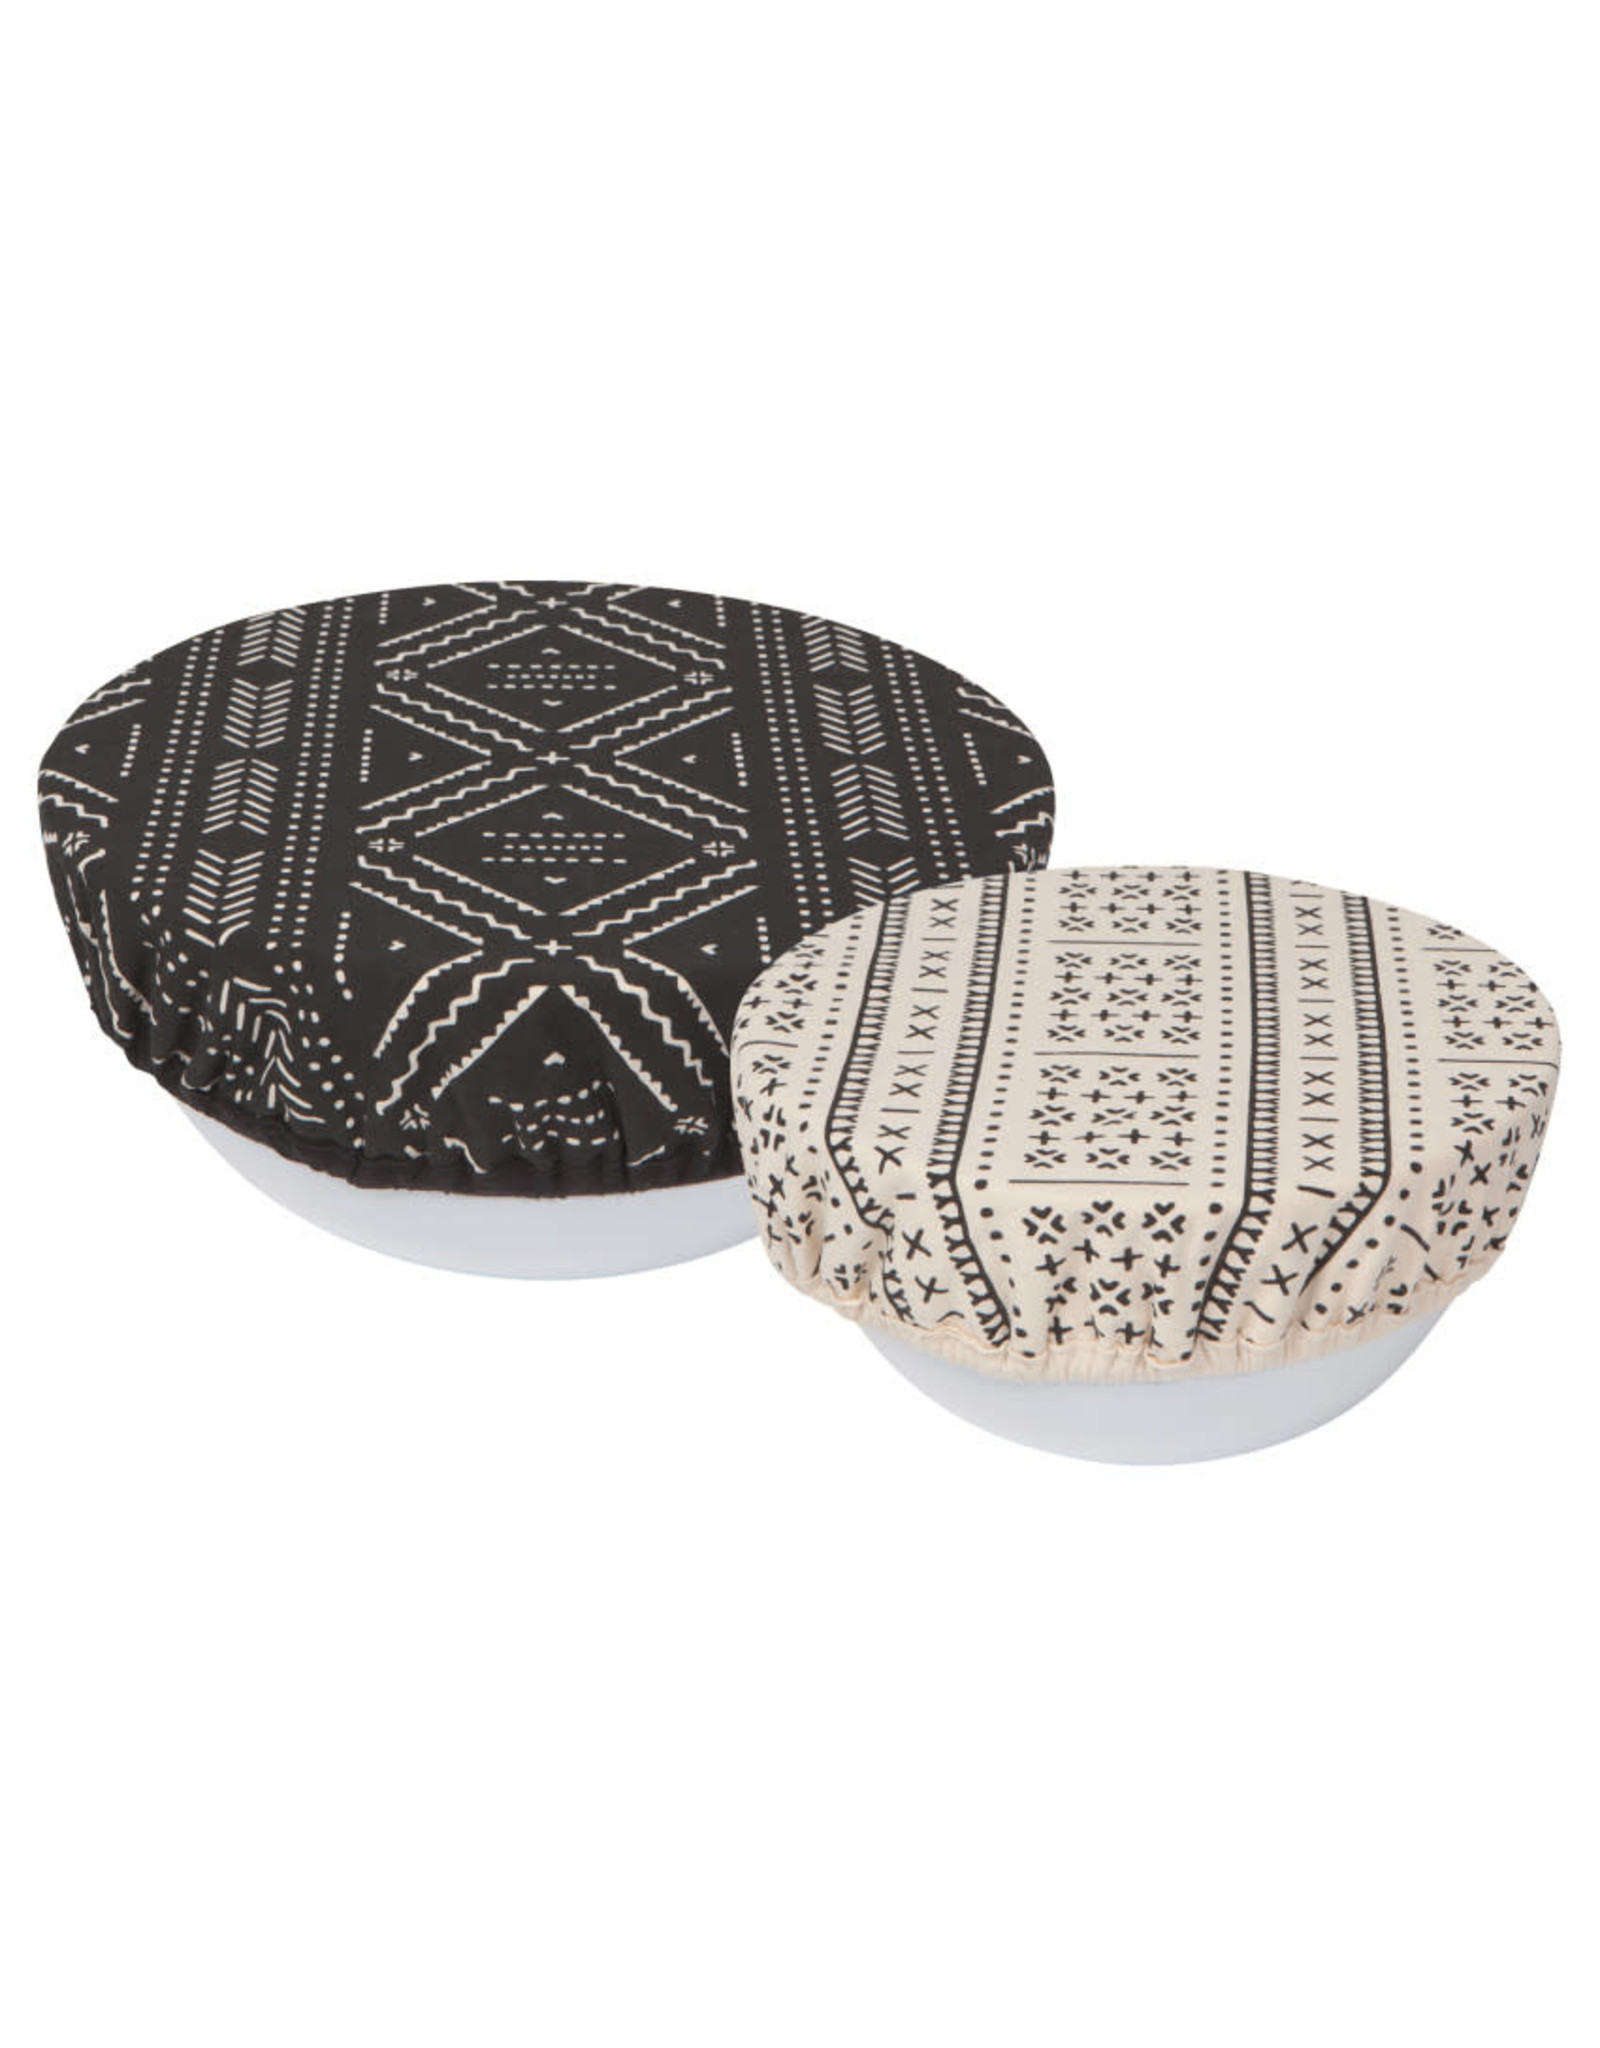 Bowl Cover Set of 2 Onyx